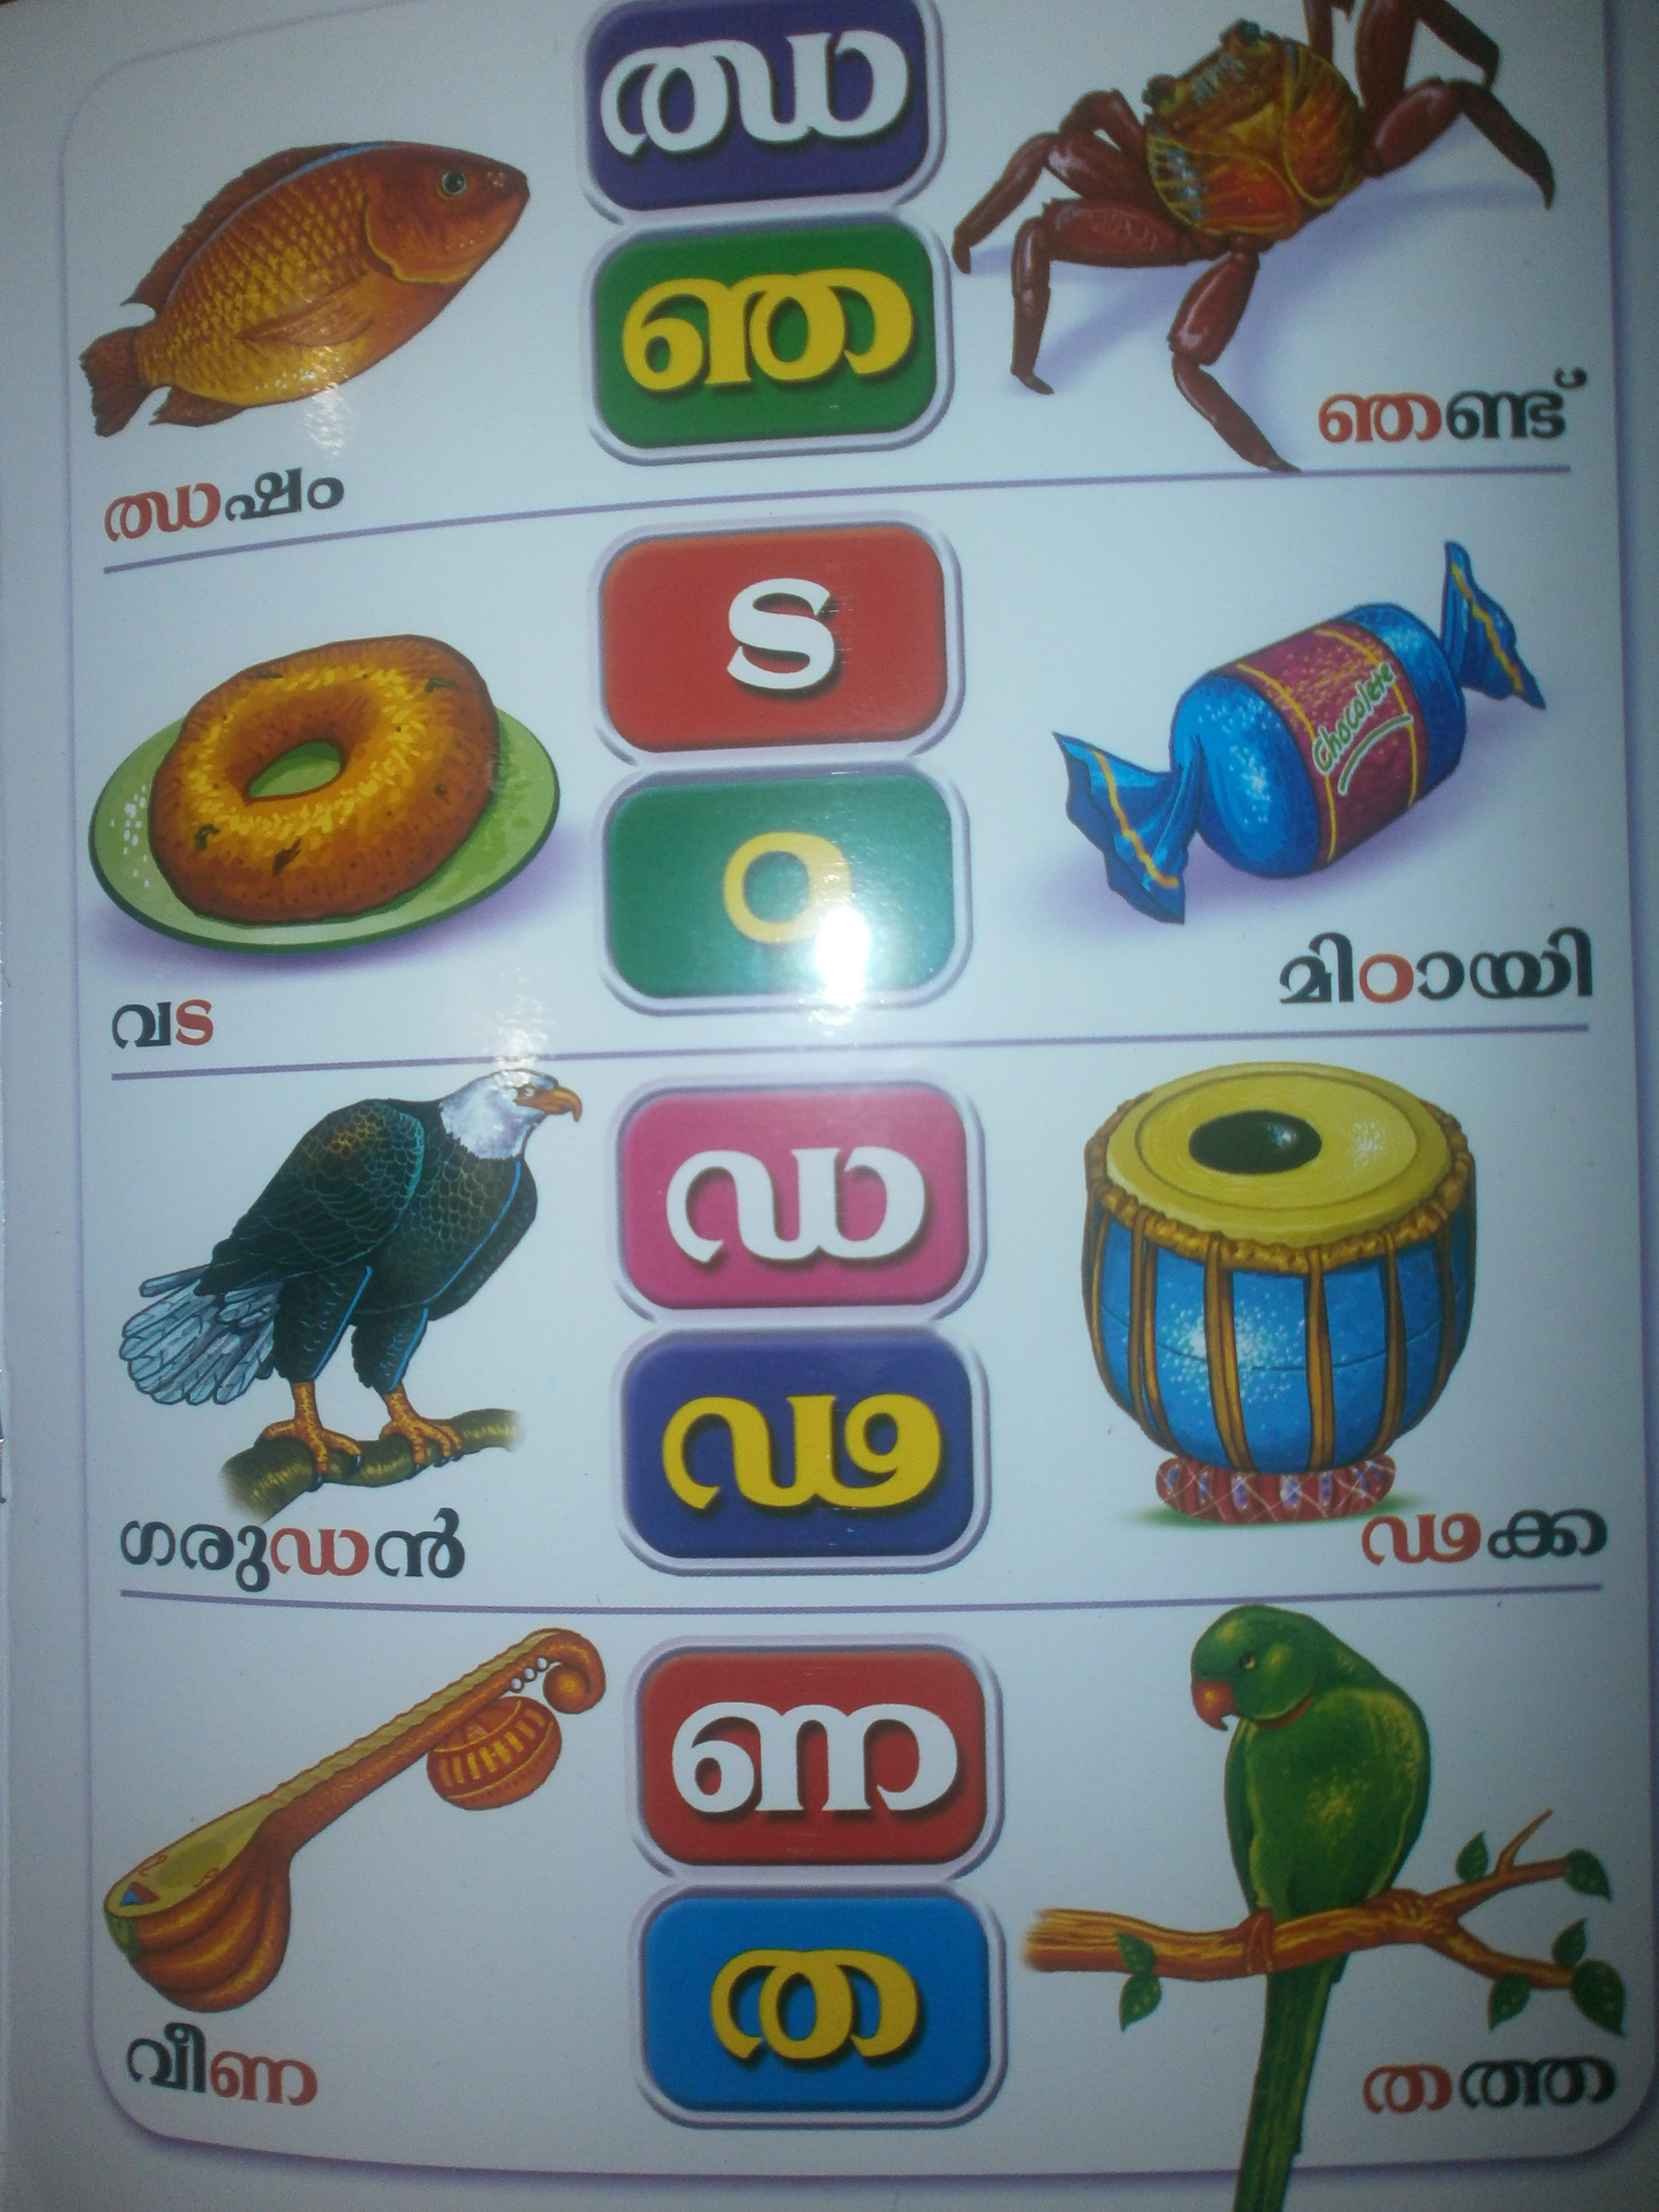 Malayalam Alphabet Words Quote Images Hd Free